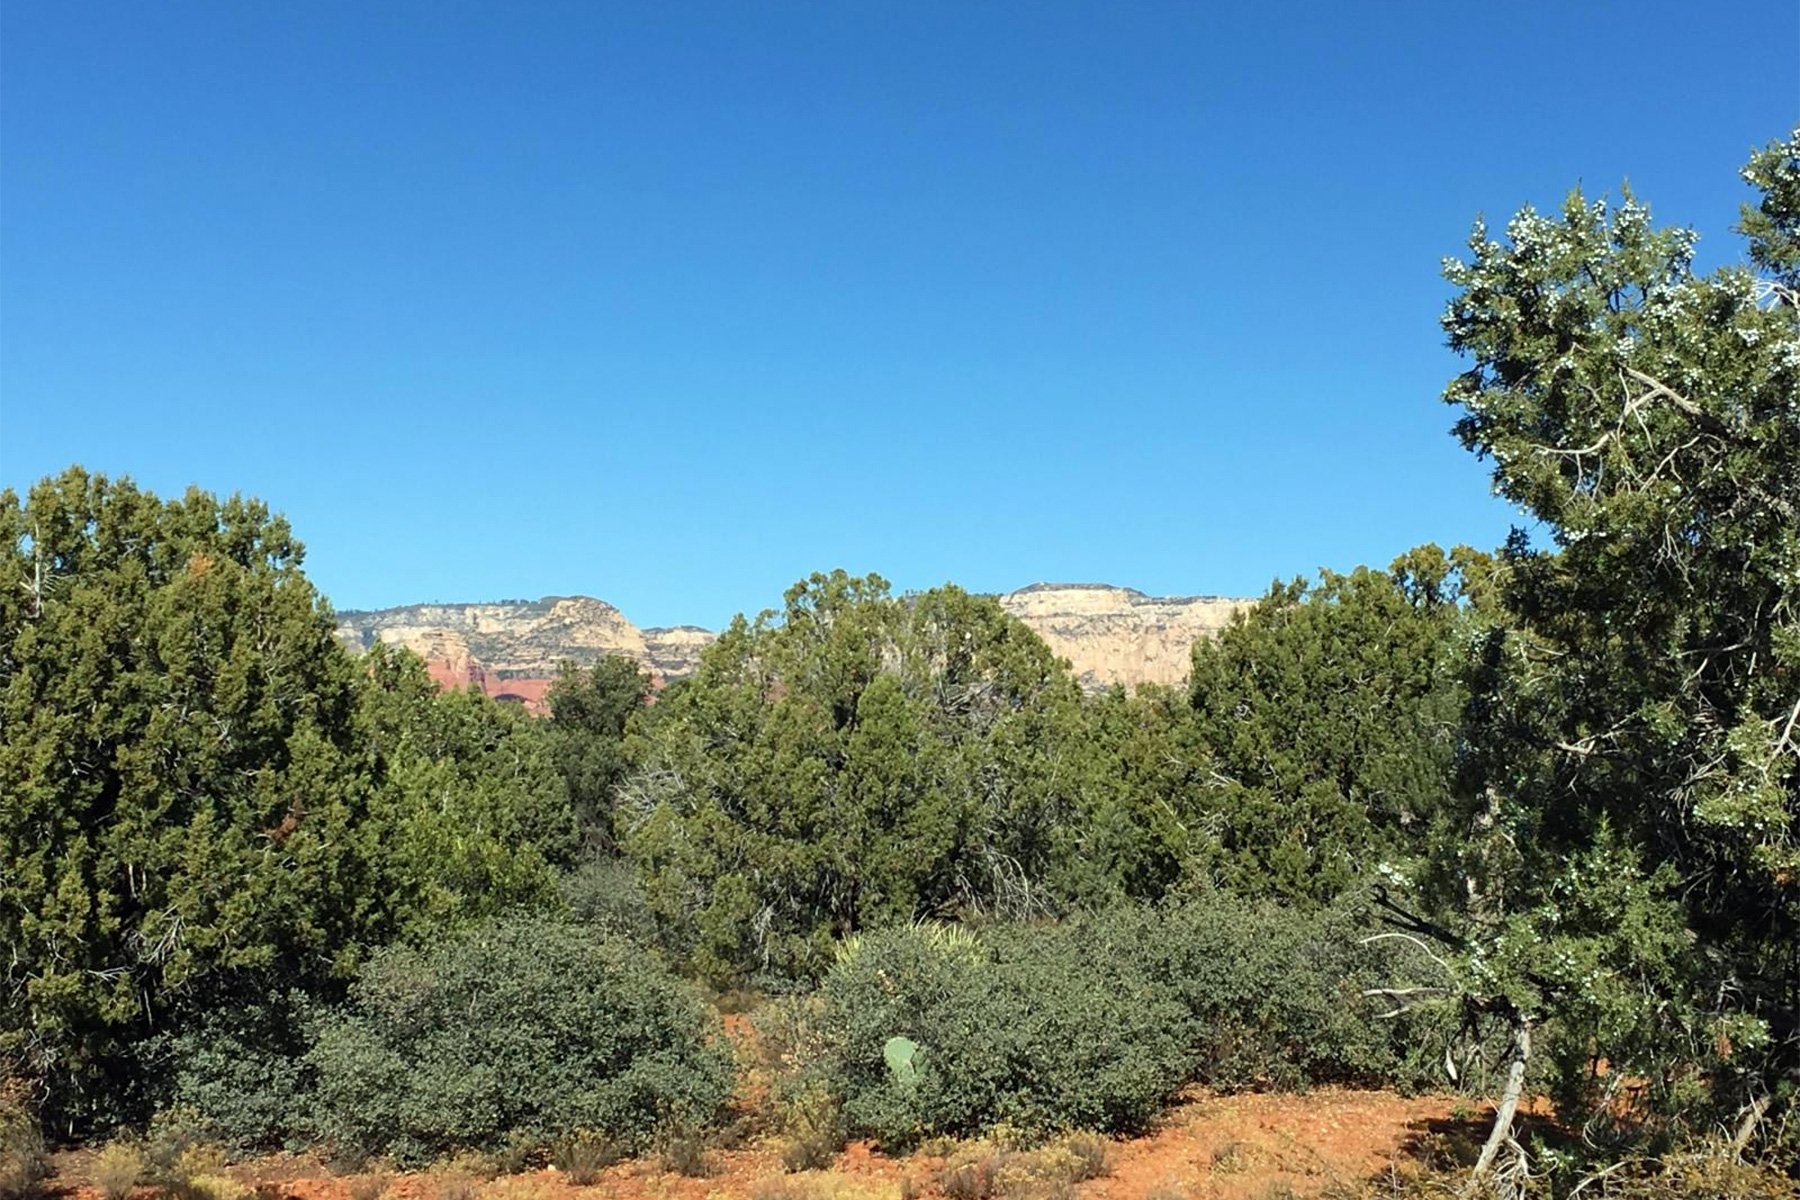 Terreno por un Venta en Level parcel in West Sedona along Dry Creek Road 700 Dry Creek 2.91 Acres Rd Sedona, Arizona, 86336 Estados Unidos